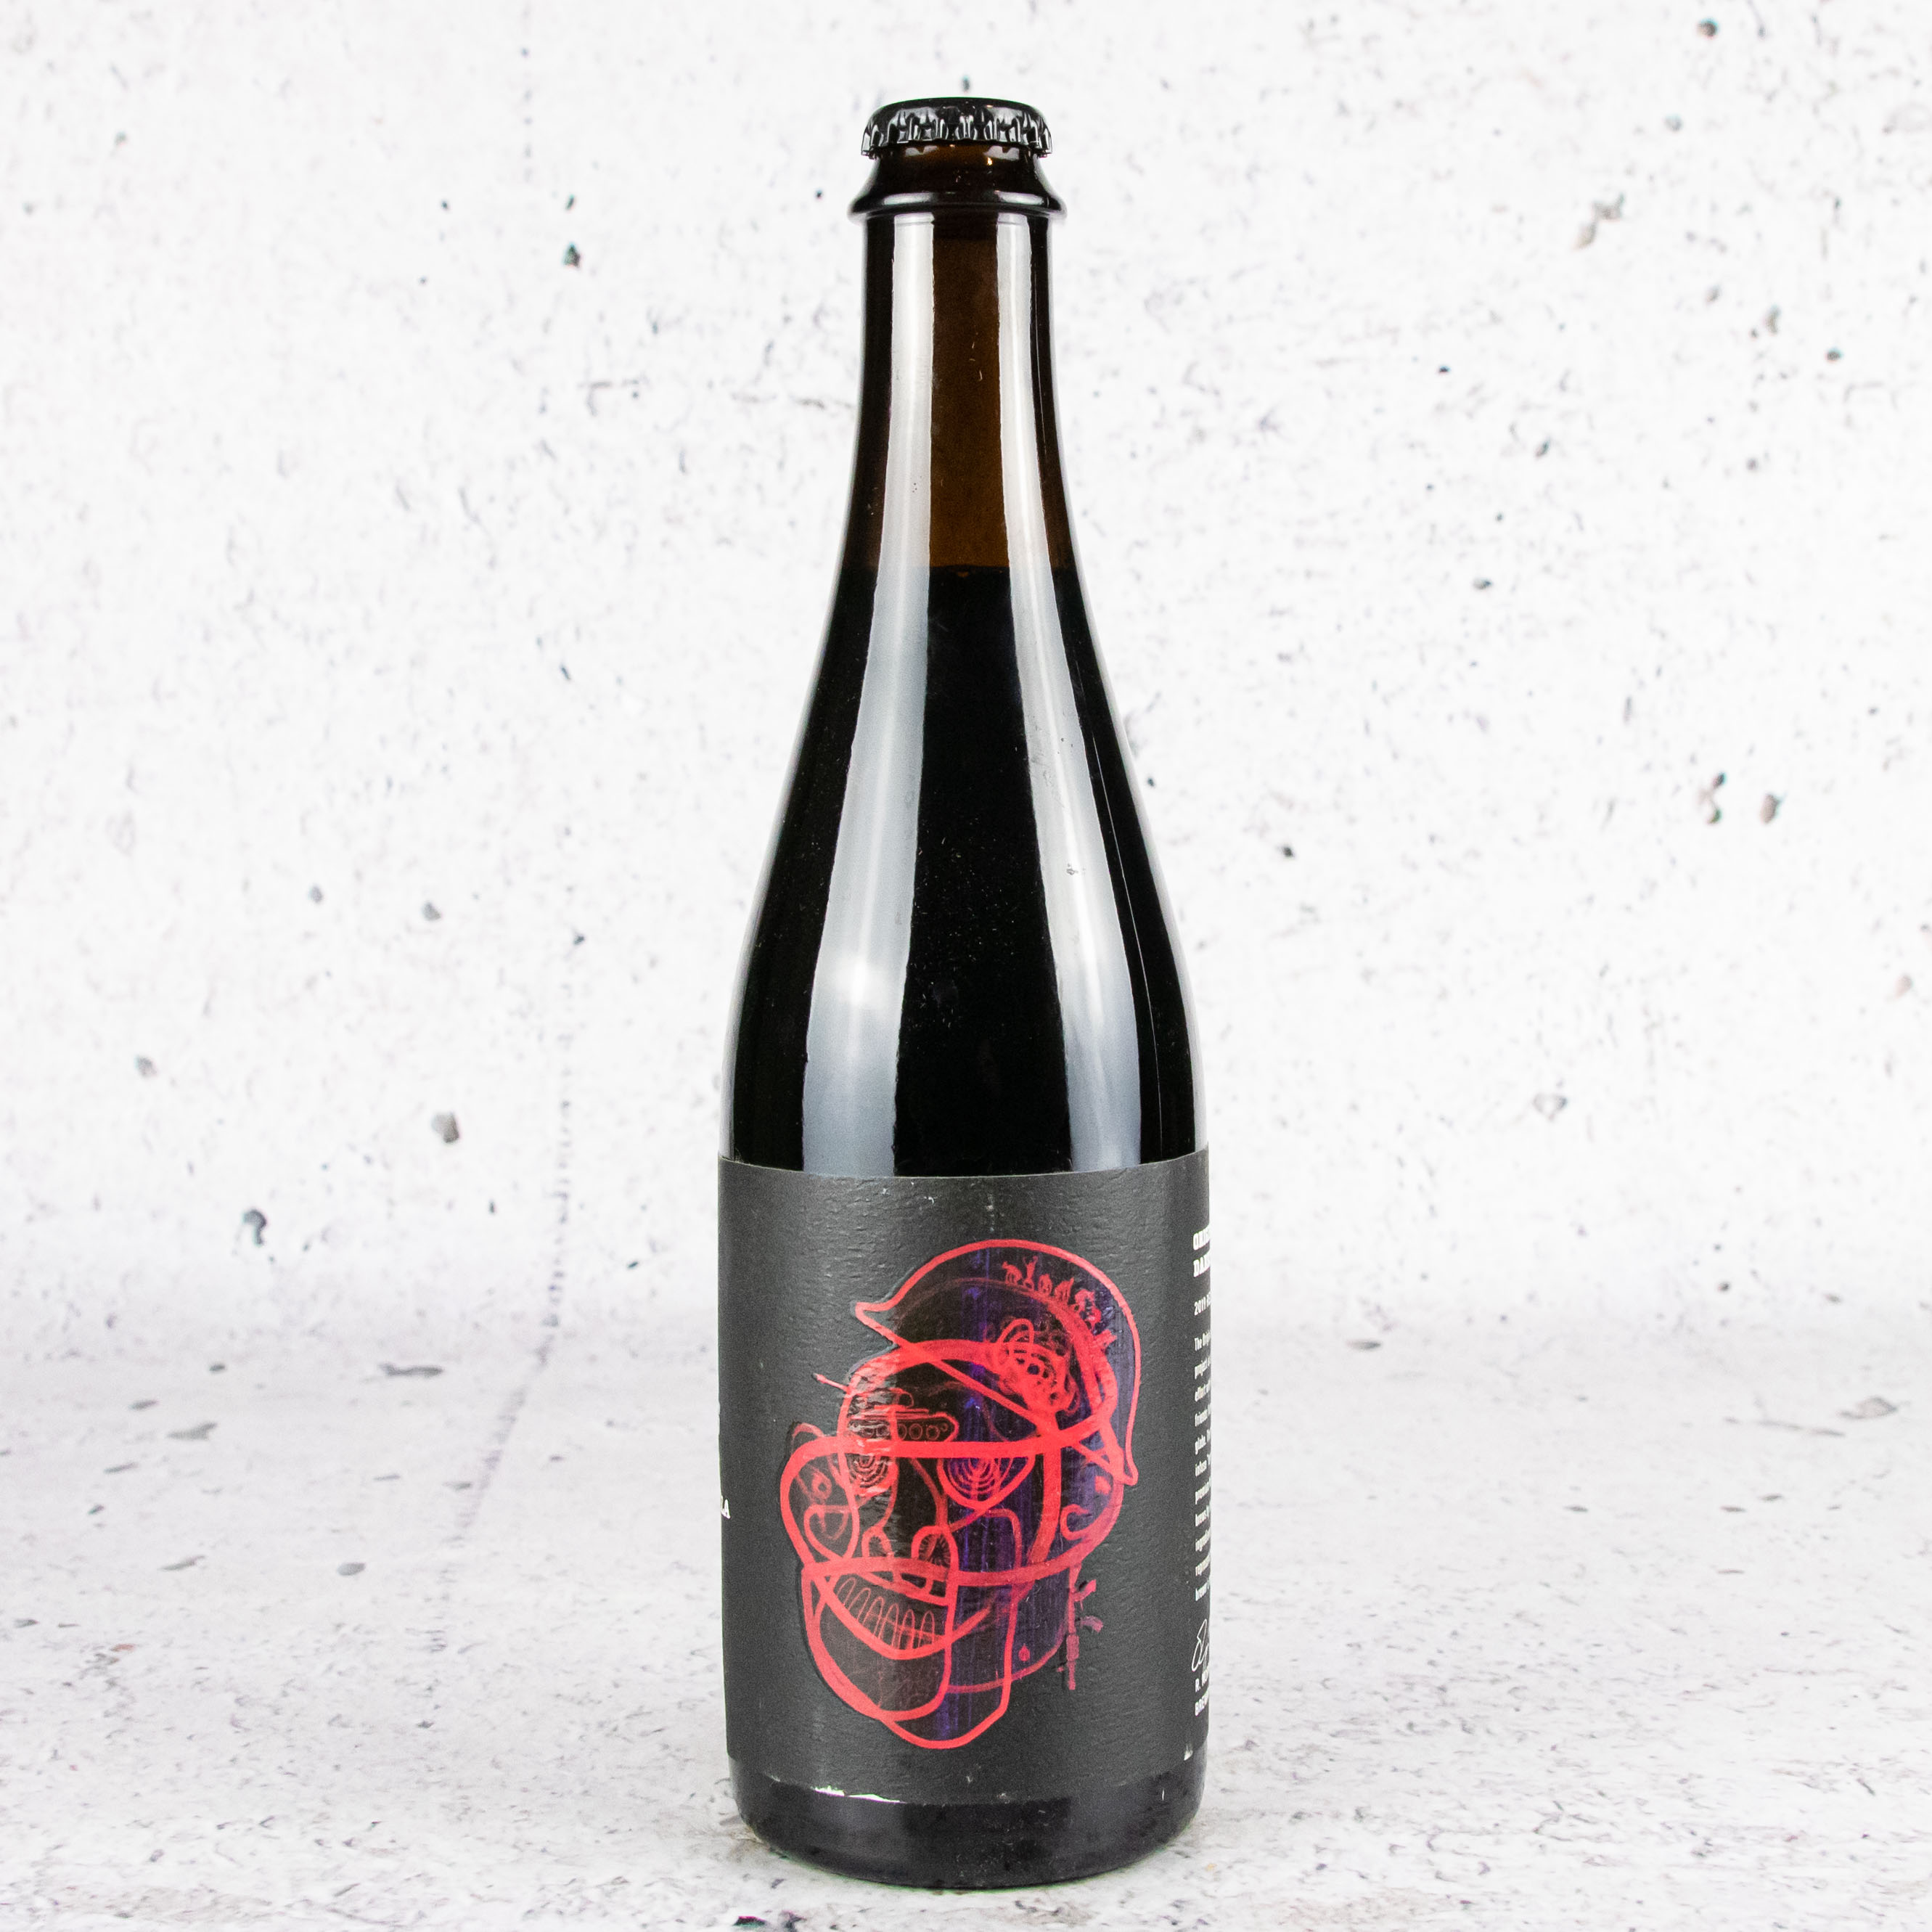 Collective Arts x Prairie Origin of Darkness Imperial Stout